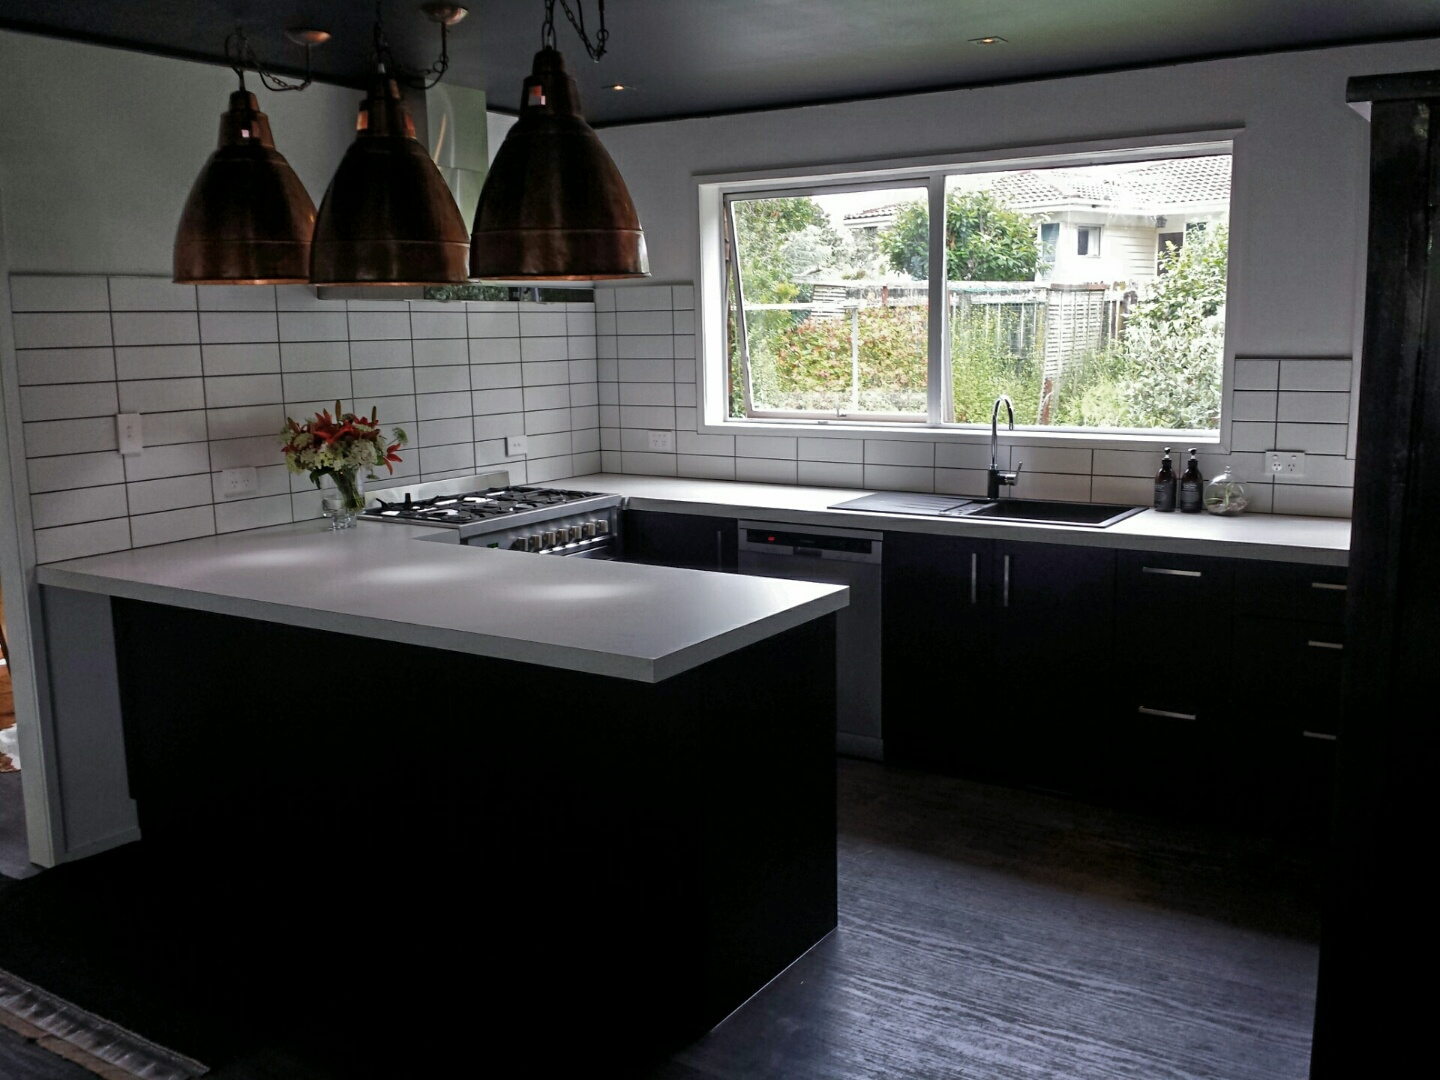 black-kitchen-with-white-bench-top-l-943dd9a1bc1e2593